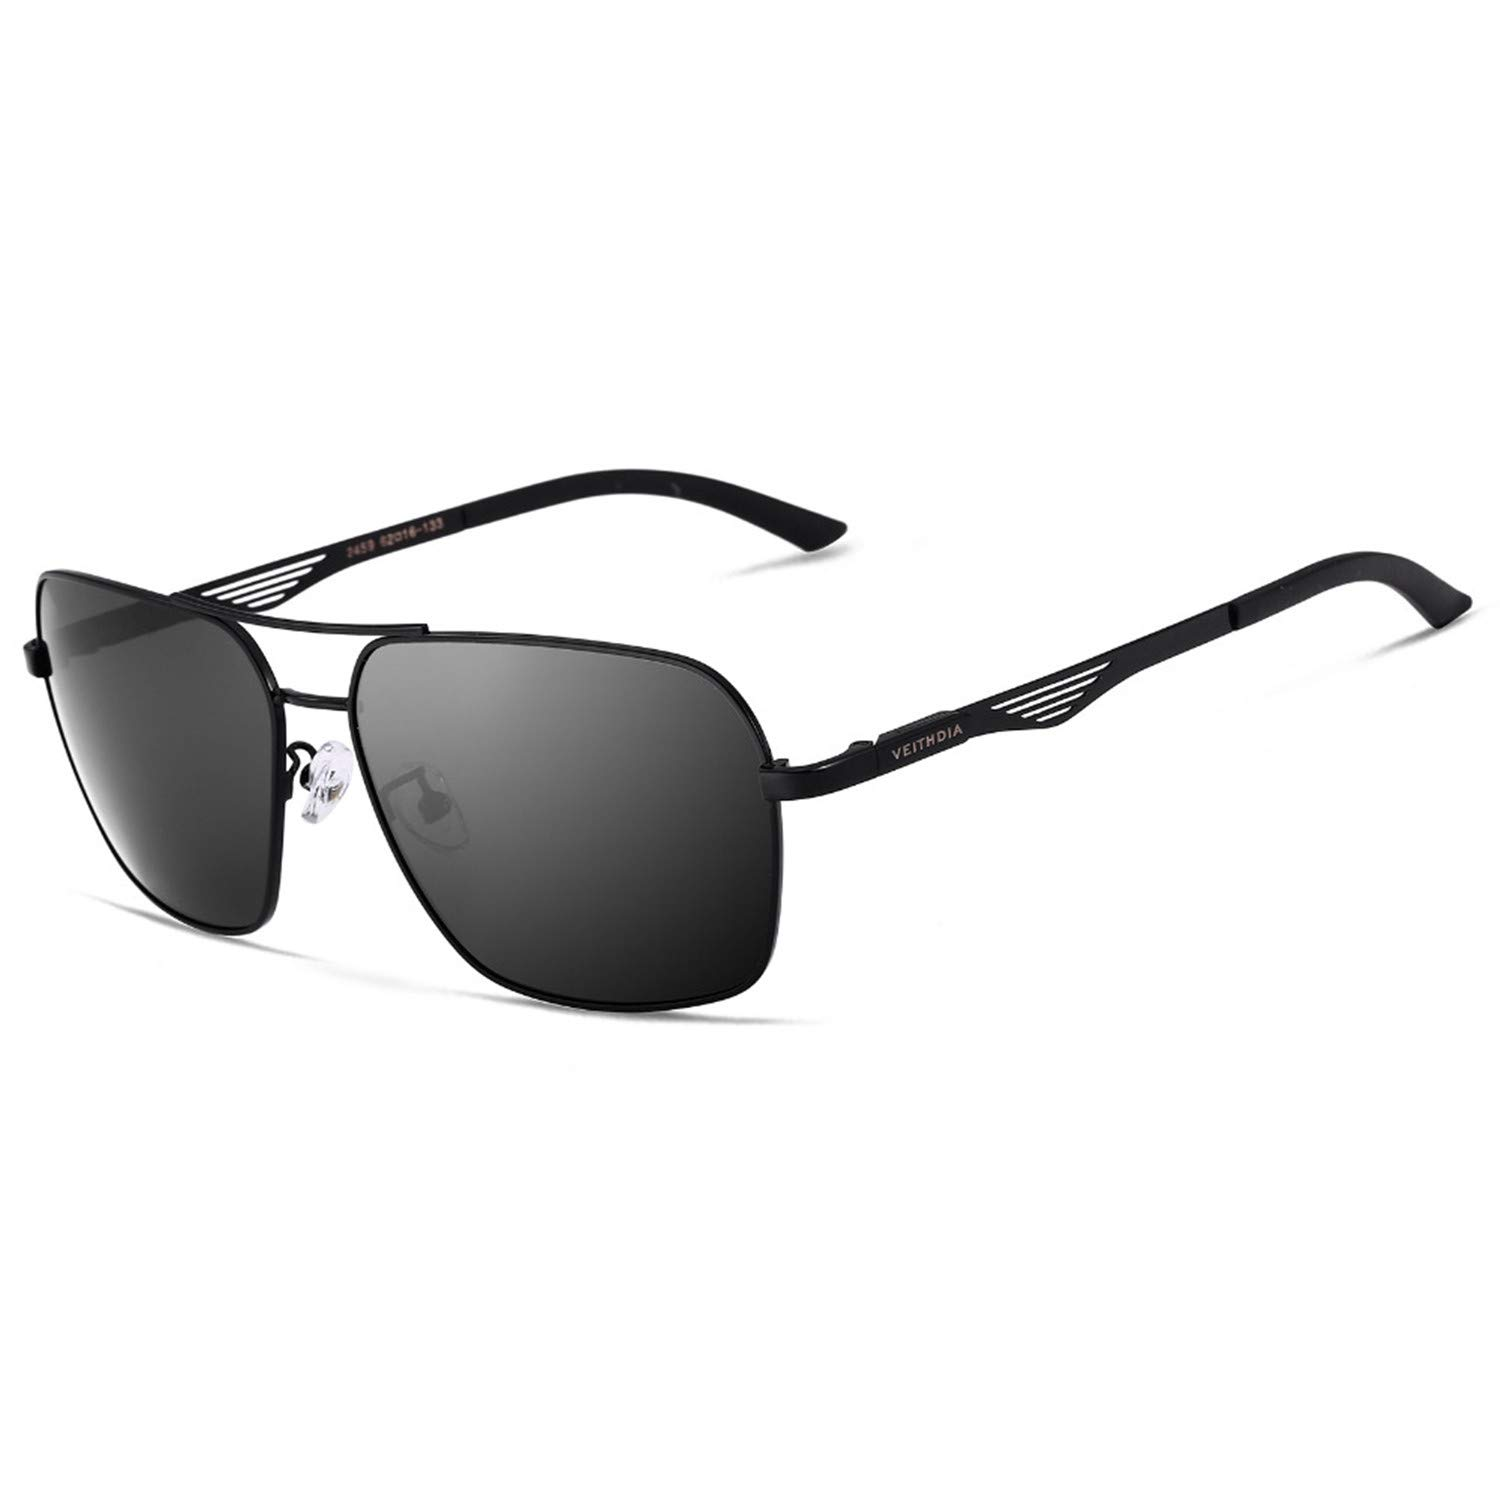 2ac10286bc03 Amazon.com: Polarized Men's Square Vintage Sun Glasses Male Eyewear  Accessories Sunglasses For Men gafas oculos de sol 2459 (Black): Clothing